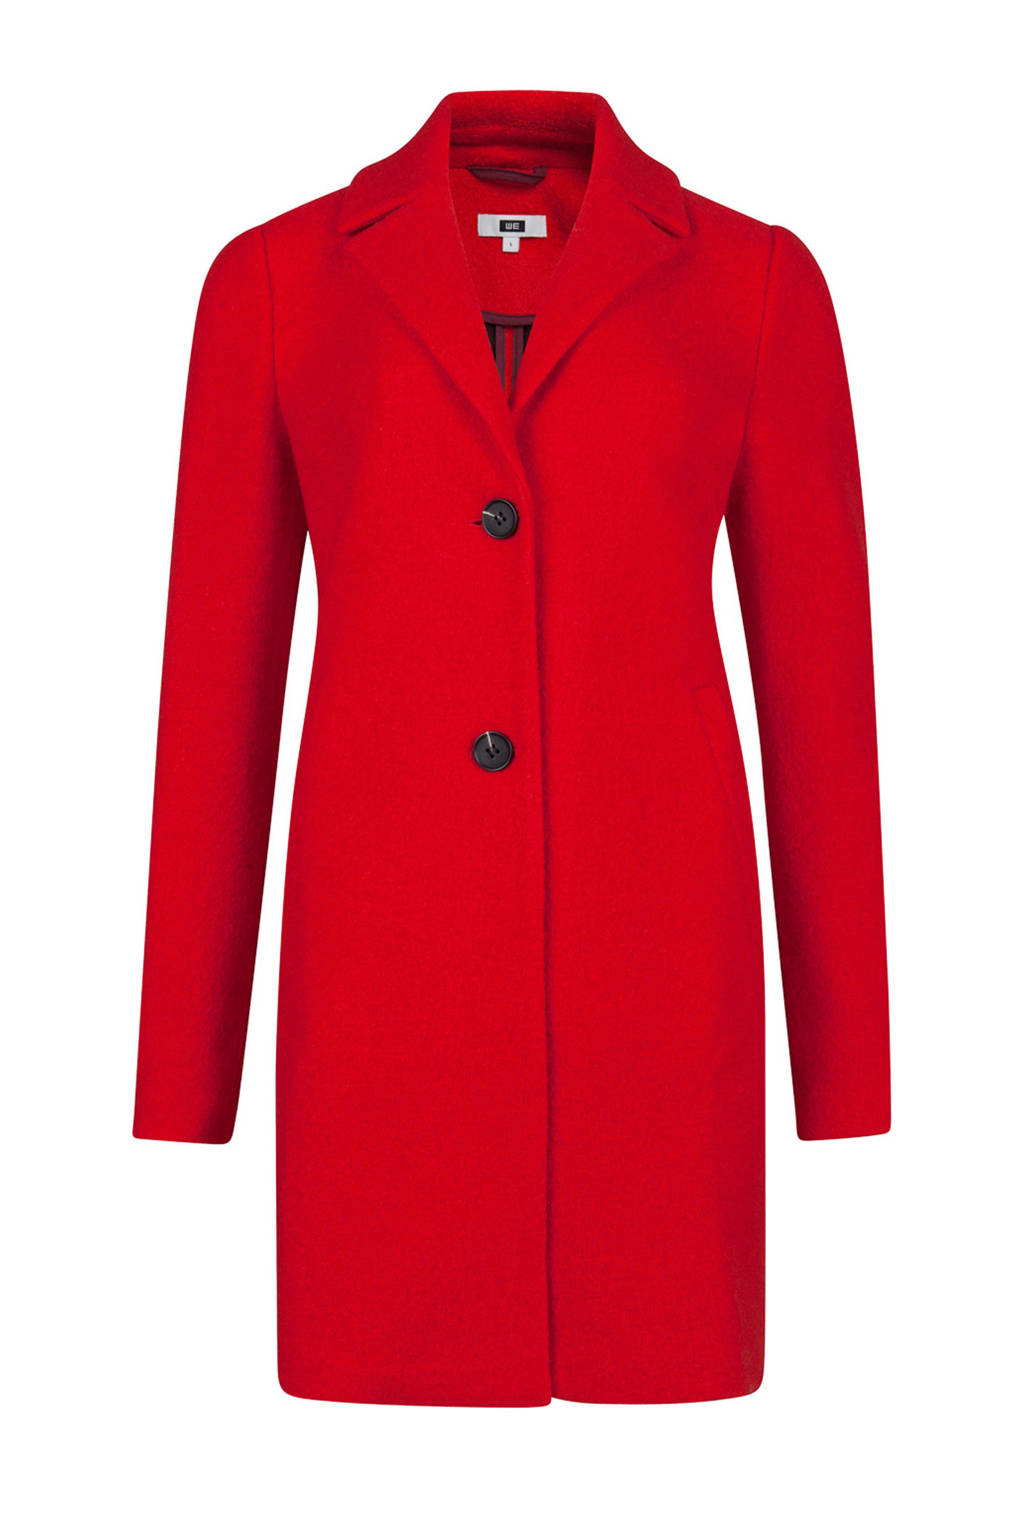 WE Fashion coat rood, Red